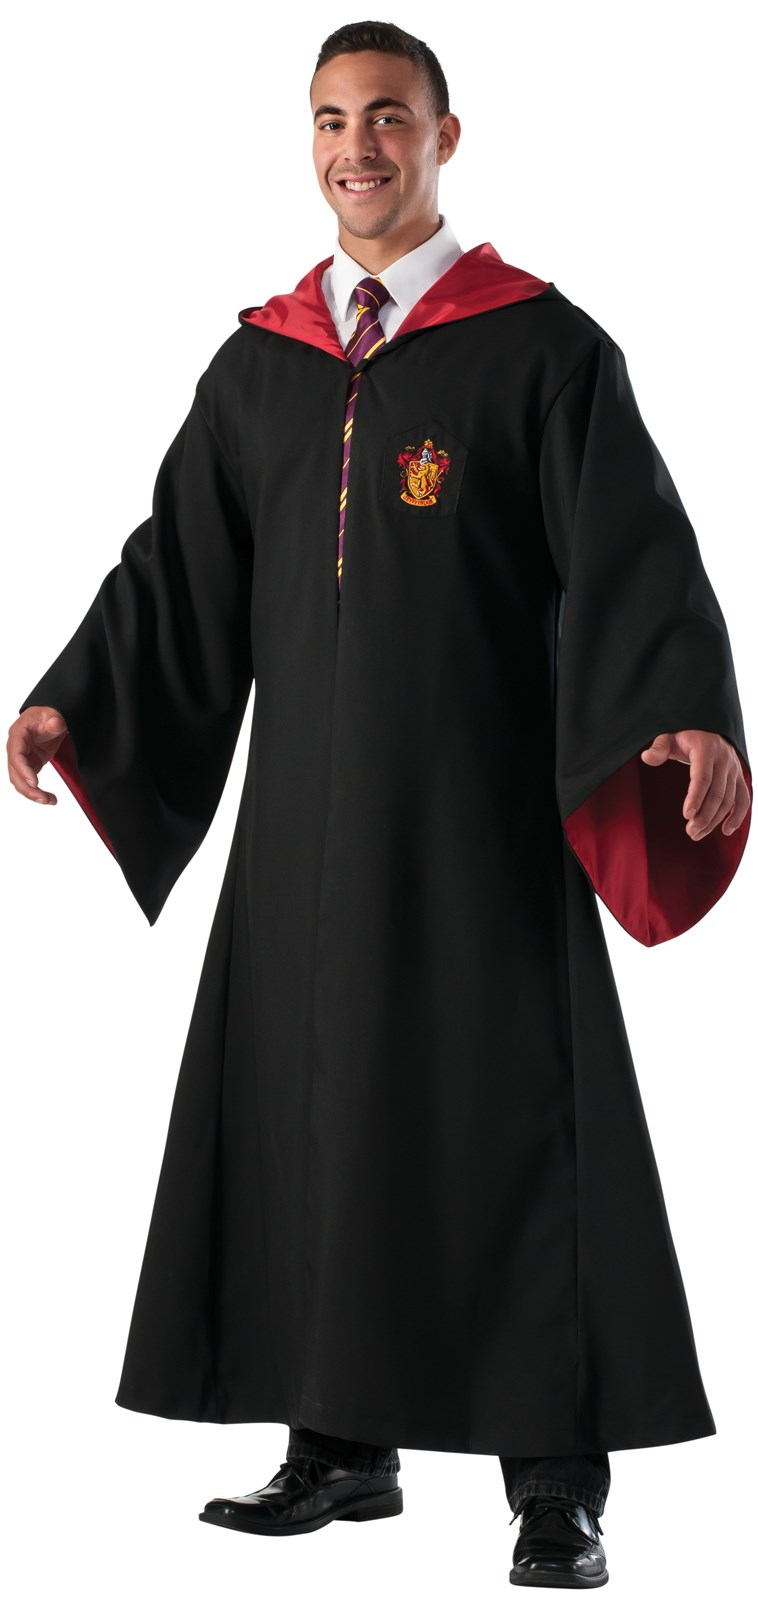 Harry Potter Deluxe Replica Gryffindor Robe For Men | BuyCostumes.com